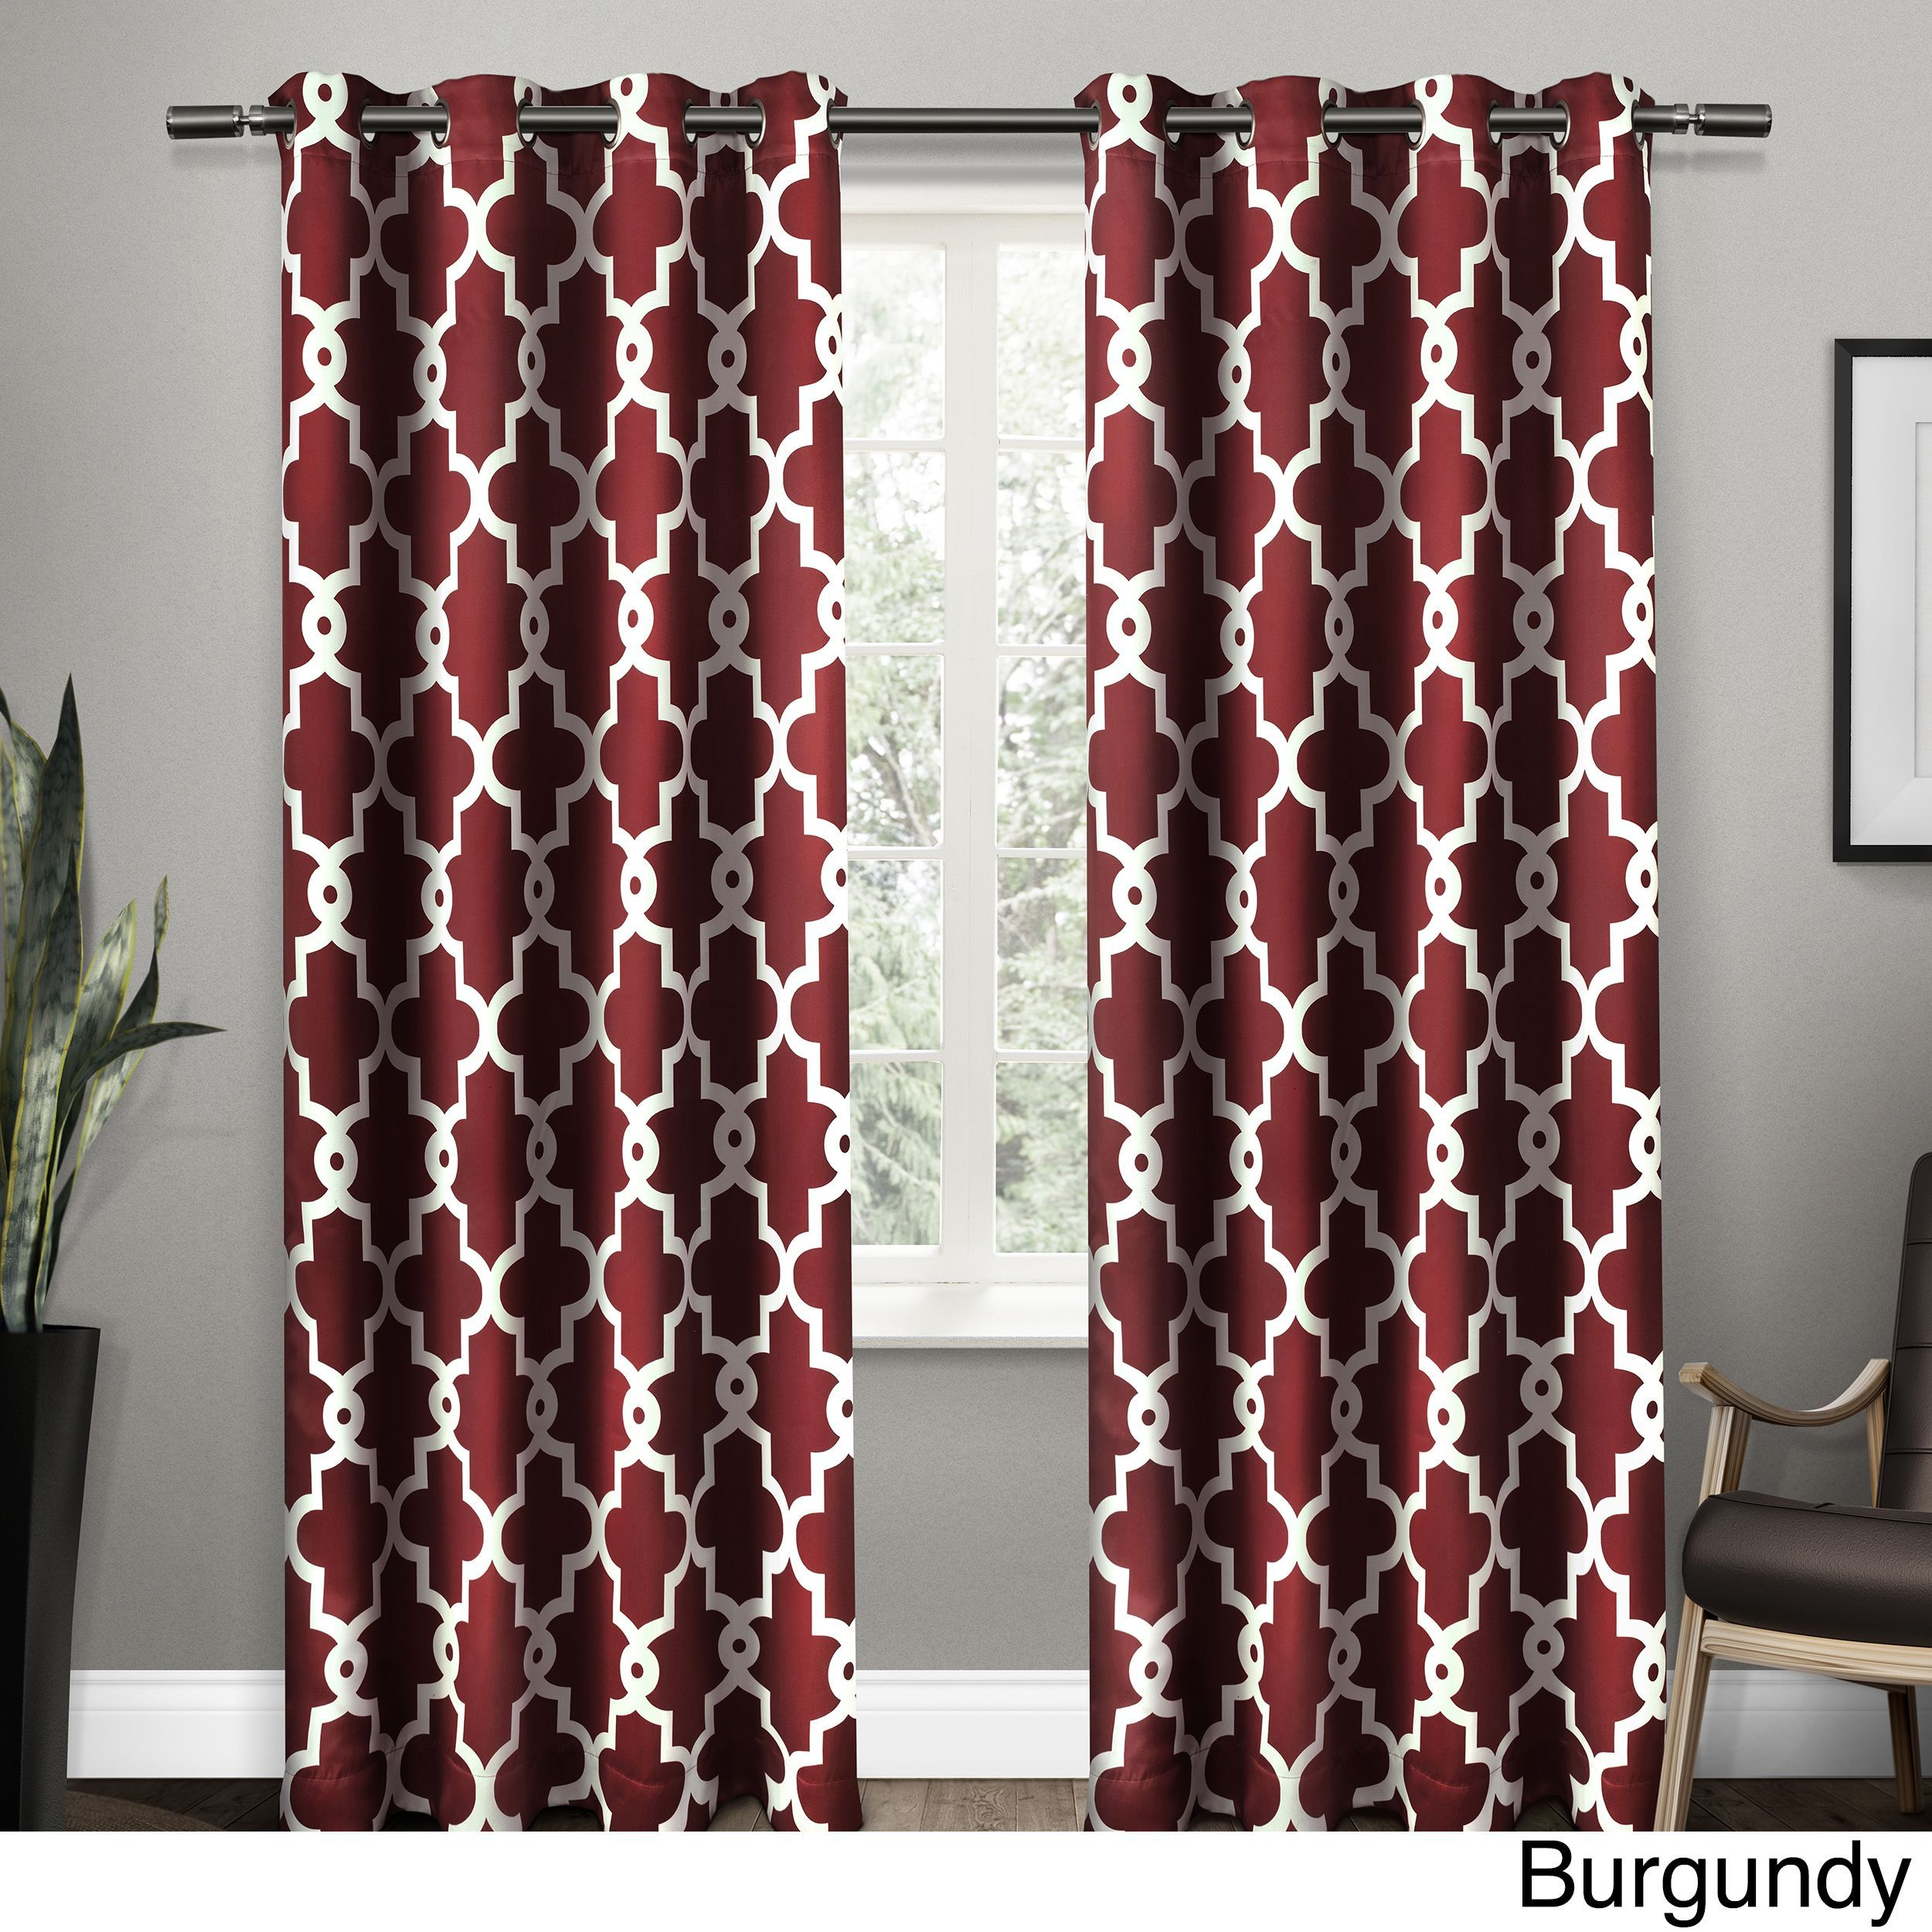 Ati home ironwork blackout thermal grommet top window curtain panel